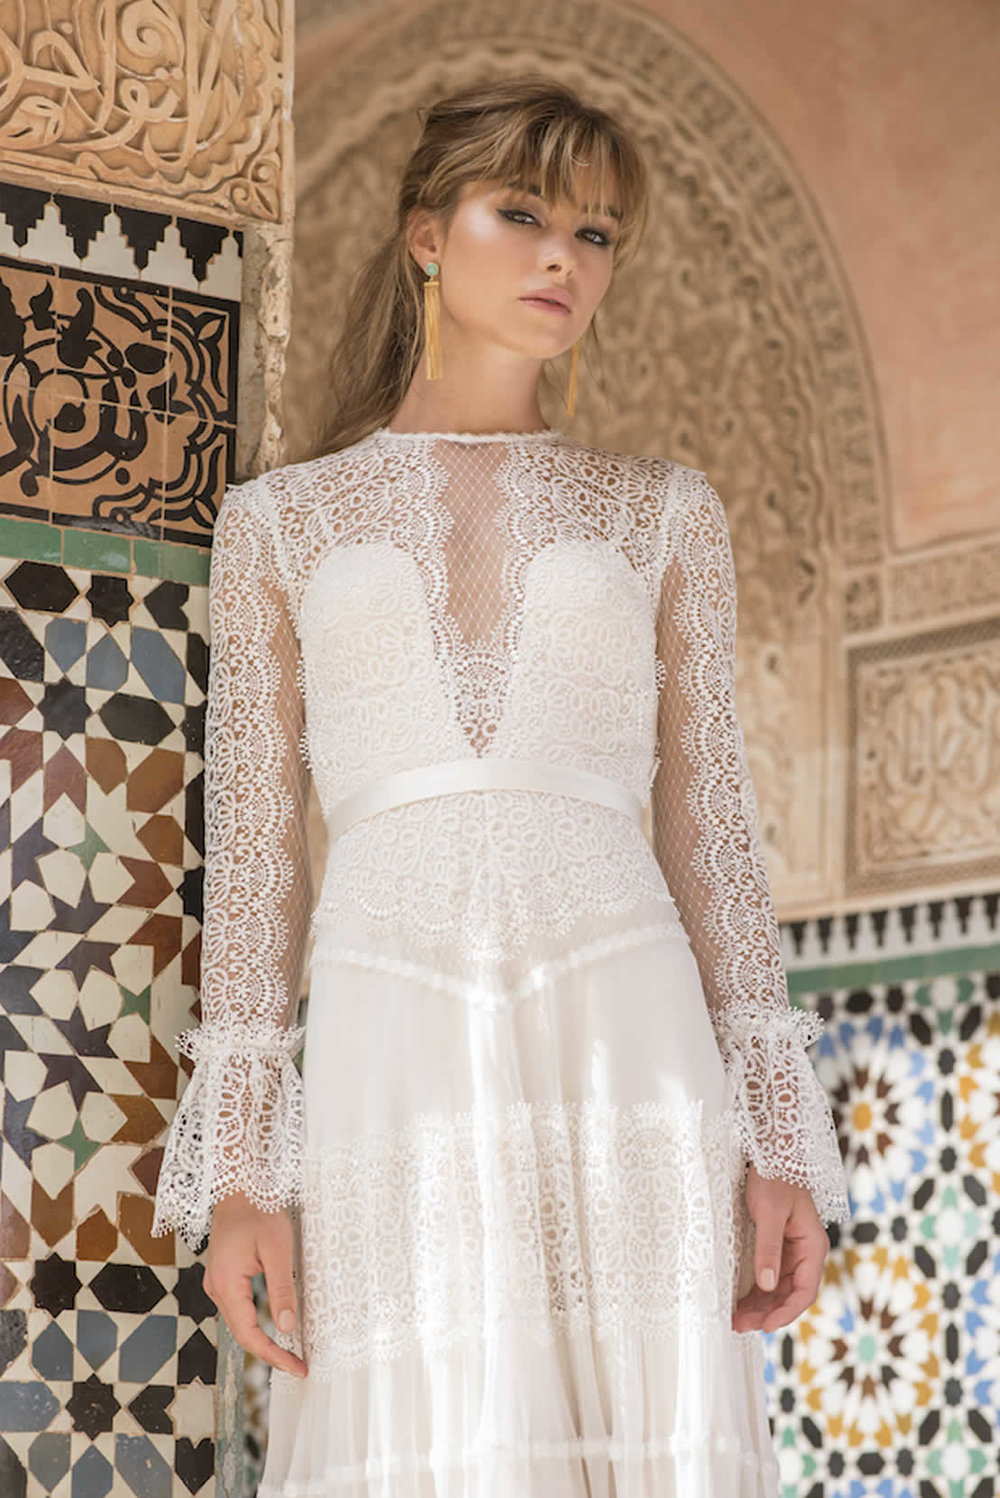 Catherine-Deane-Wedding-Dresses-jeneva.jpg